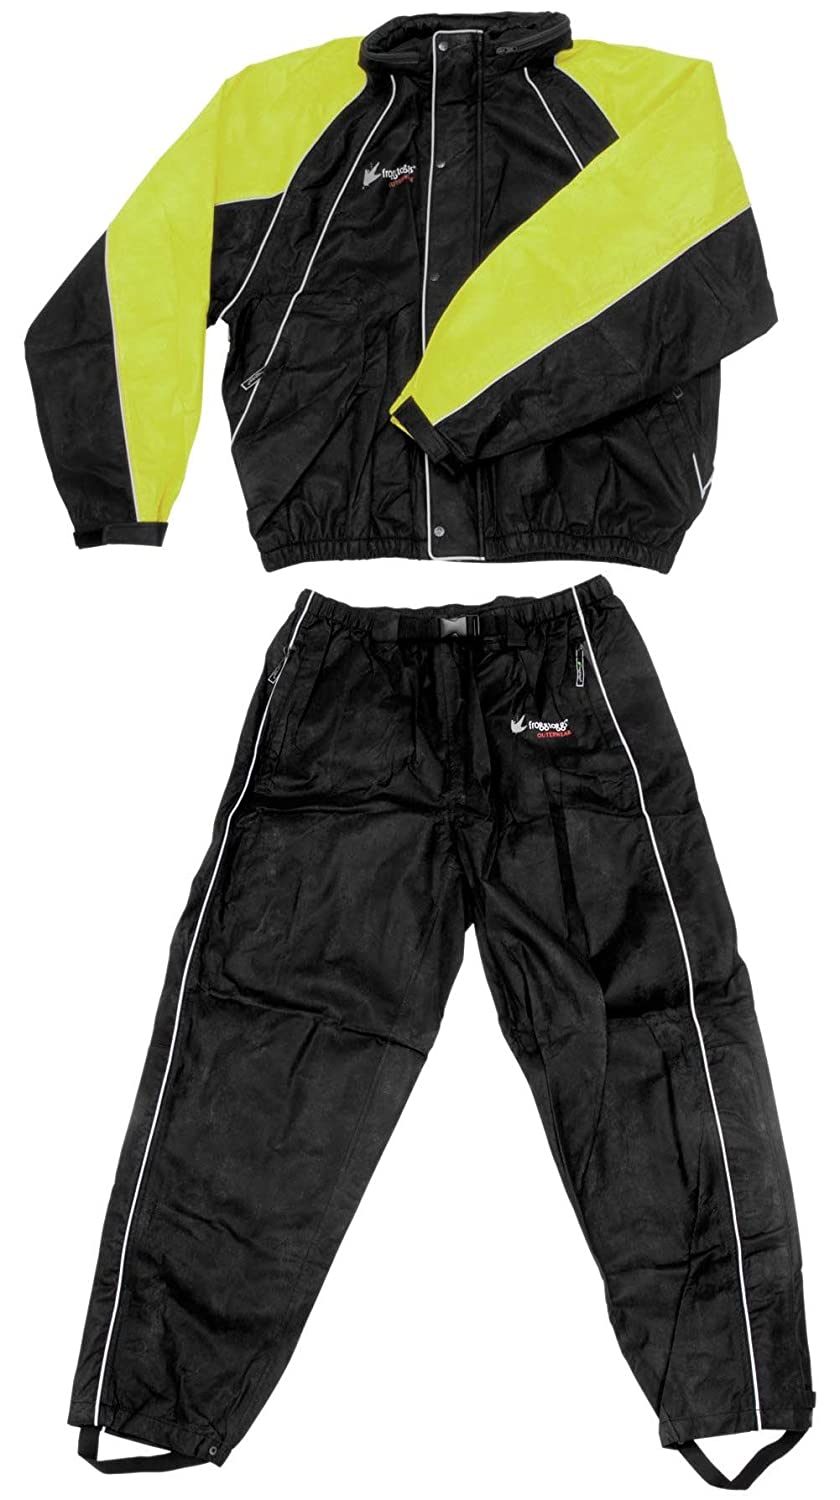 Frogg Toggs Hogg Togg Rain Suit S ブラック FT10322-48-SM B005FZXYK8 Black & Lime S